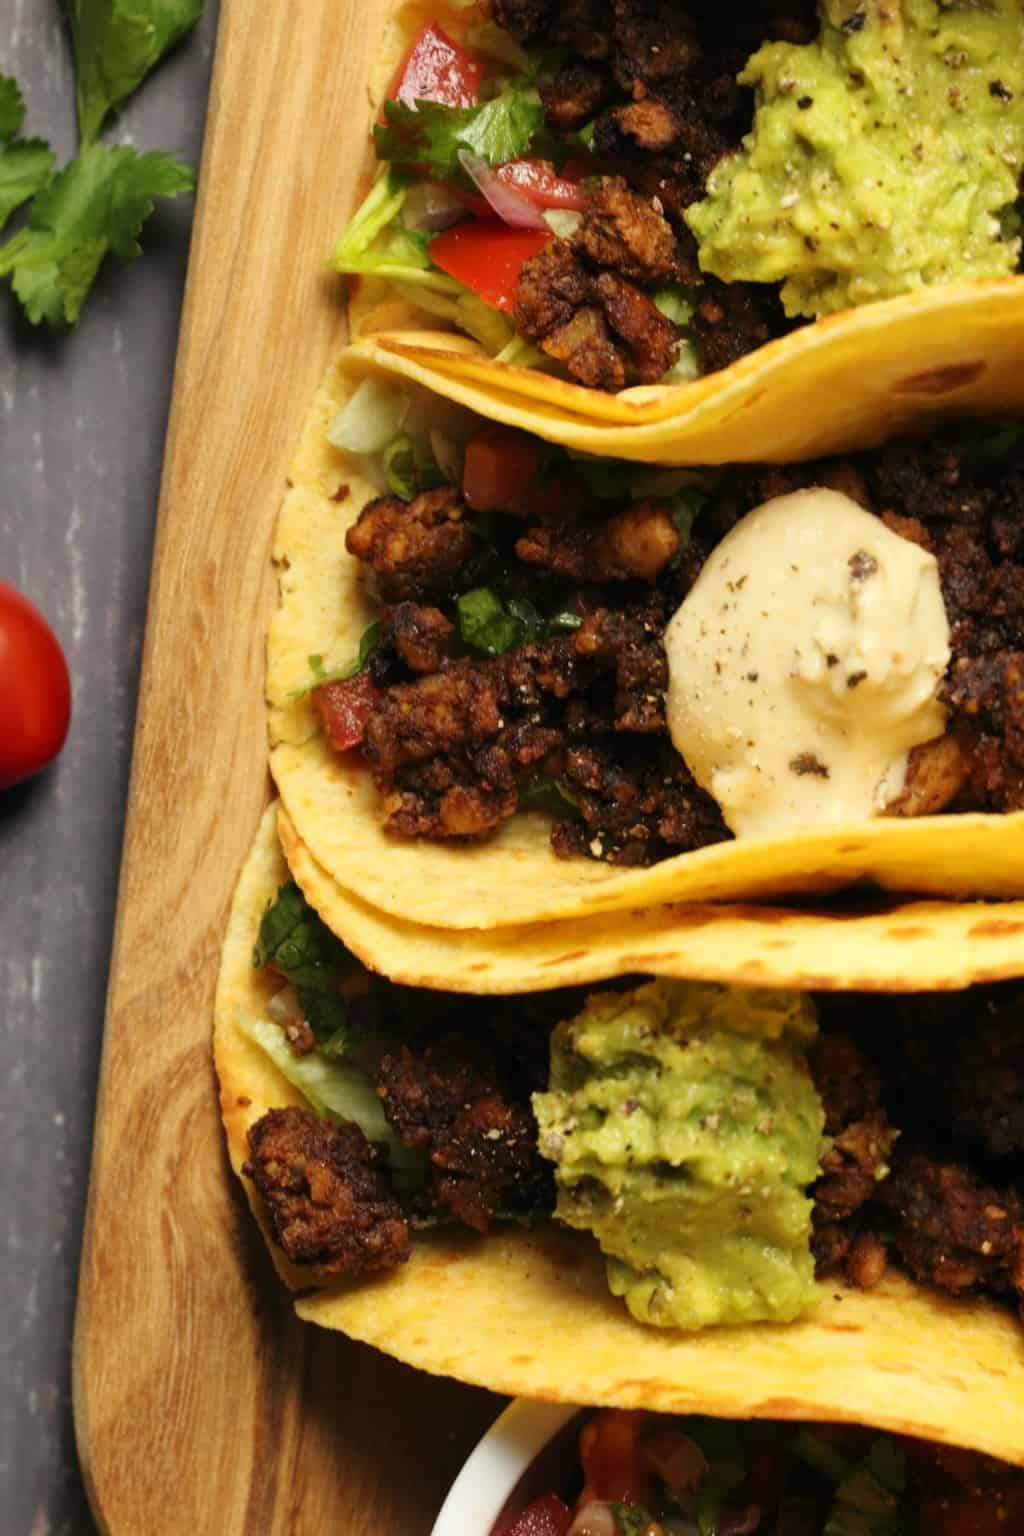 Vegan taco meat in tacos with lettuce, salsa, guacamole and vegan sour cream on a wooden board.